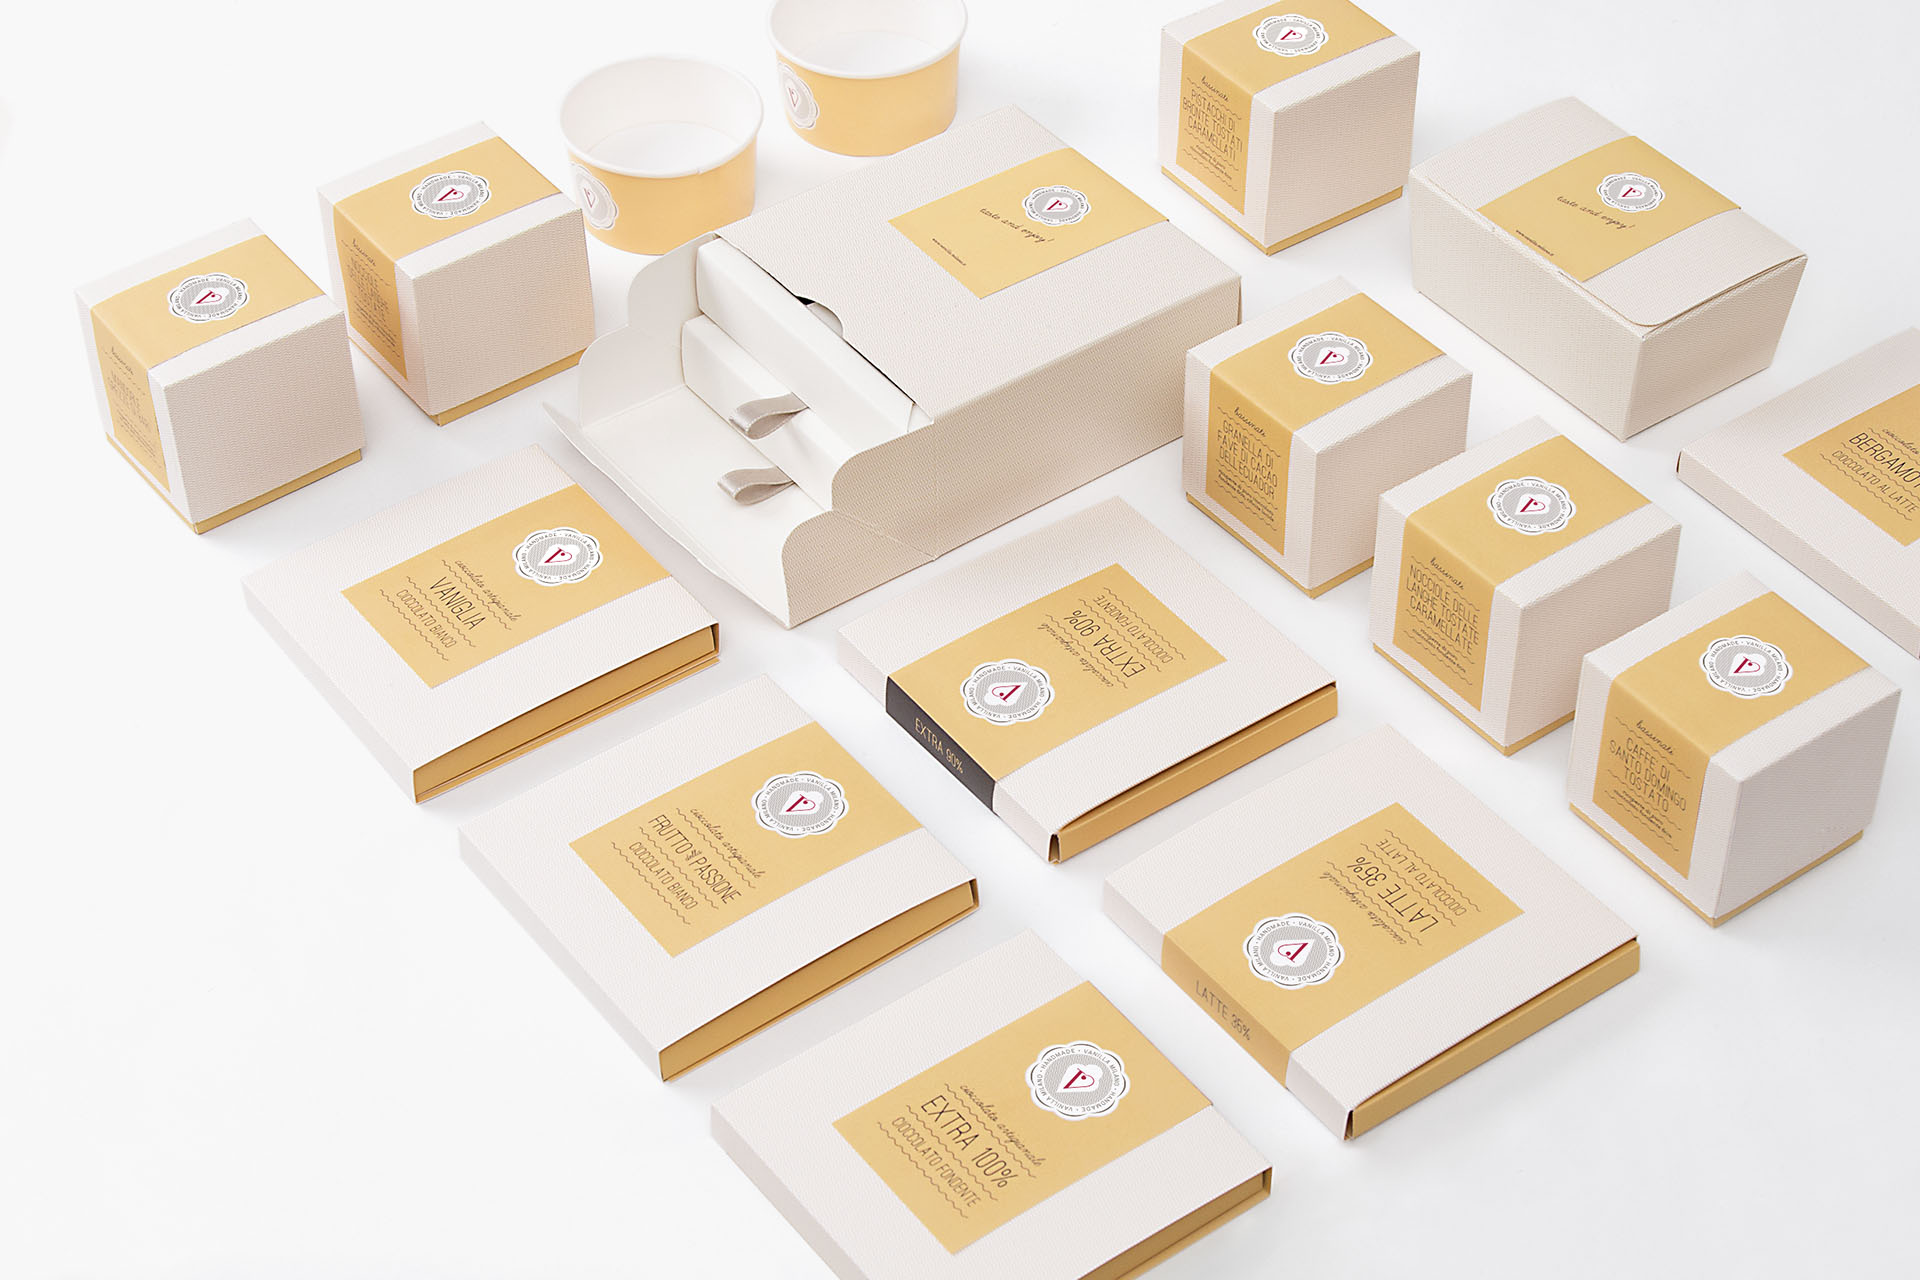 Homemade Ice-Cream Shop, Patisserie and Coffee Bar Branding and Packaging Design / World Brand & Packaging Design Society